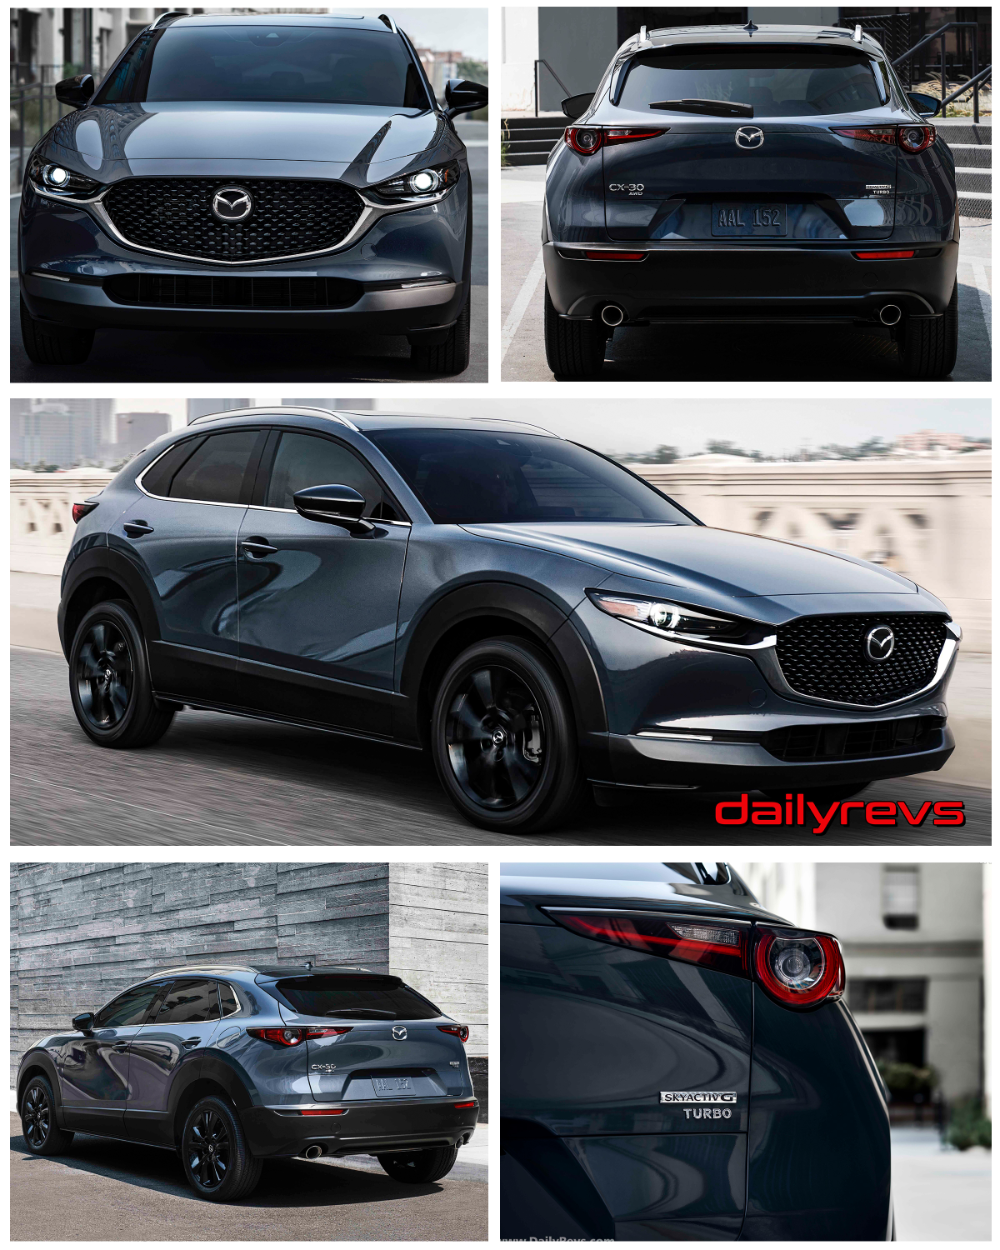 2021 Mazda CX30 2.5 Turbo Dailyrevs in 2020 Mazda